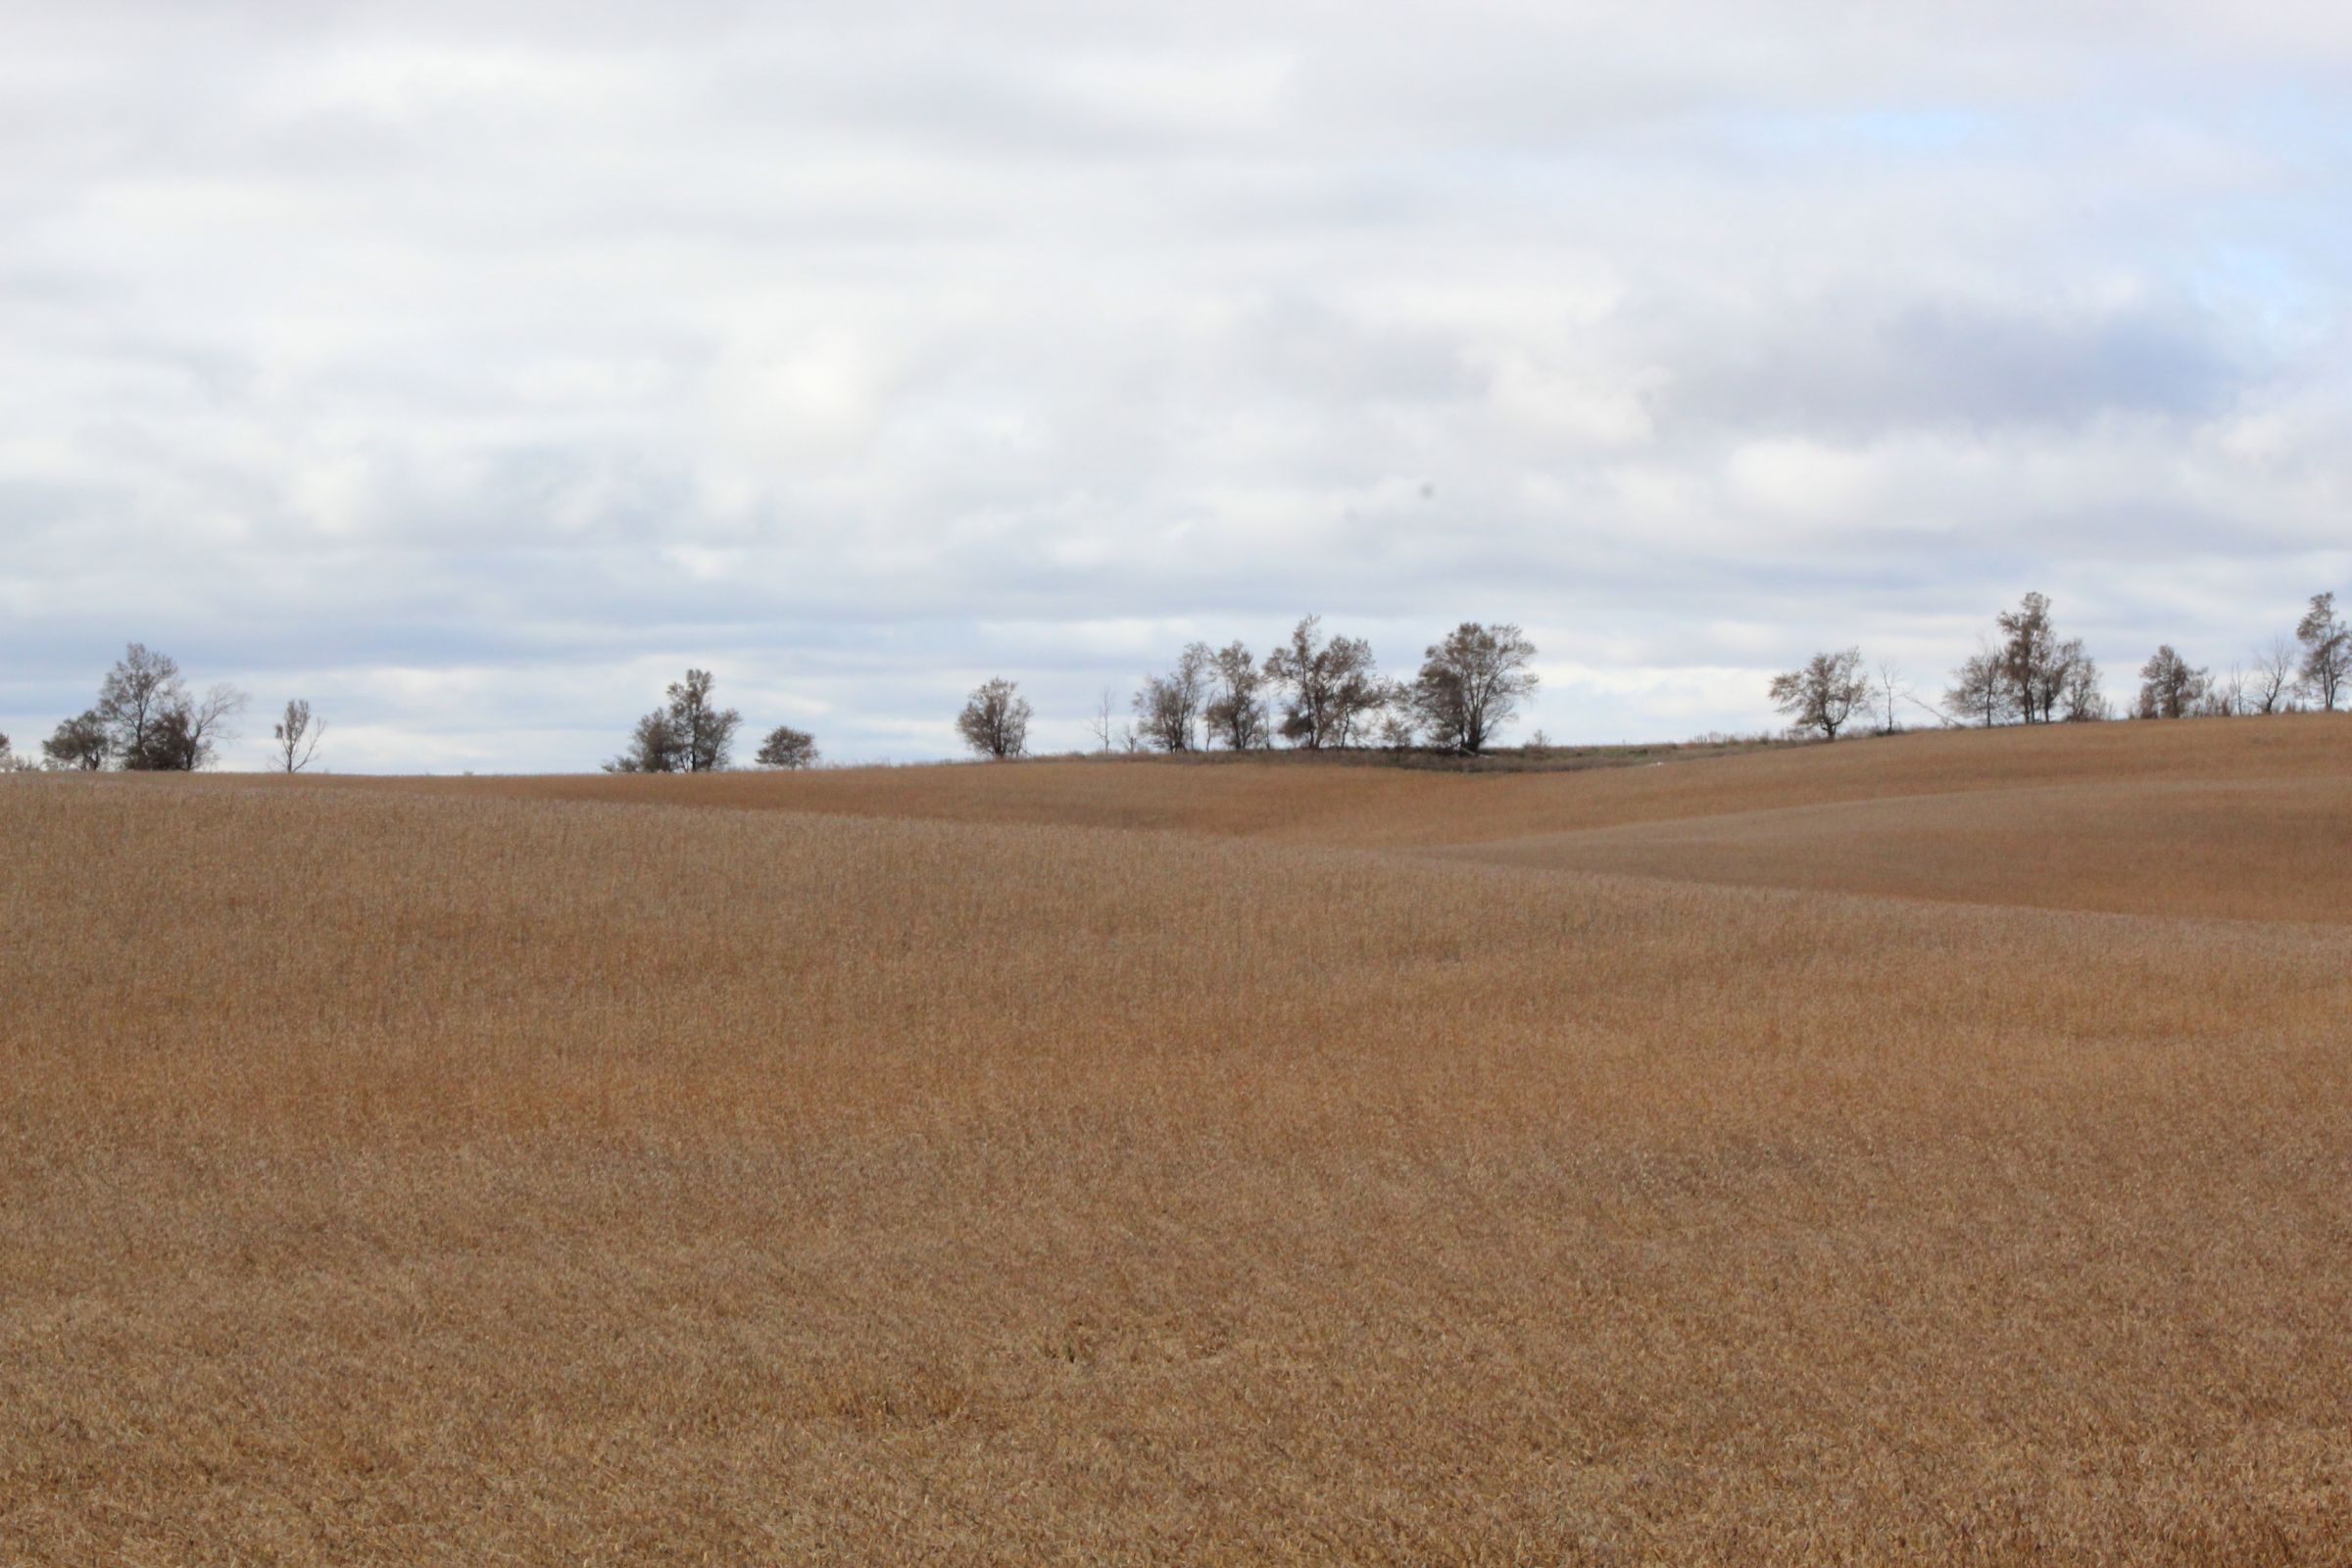 stutsman-county-north-dakota-312-acres-listing-number-15116-4-2020-08-12-141908.JPG